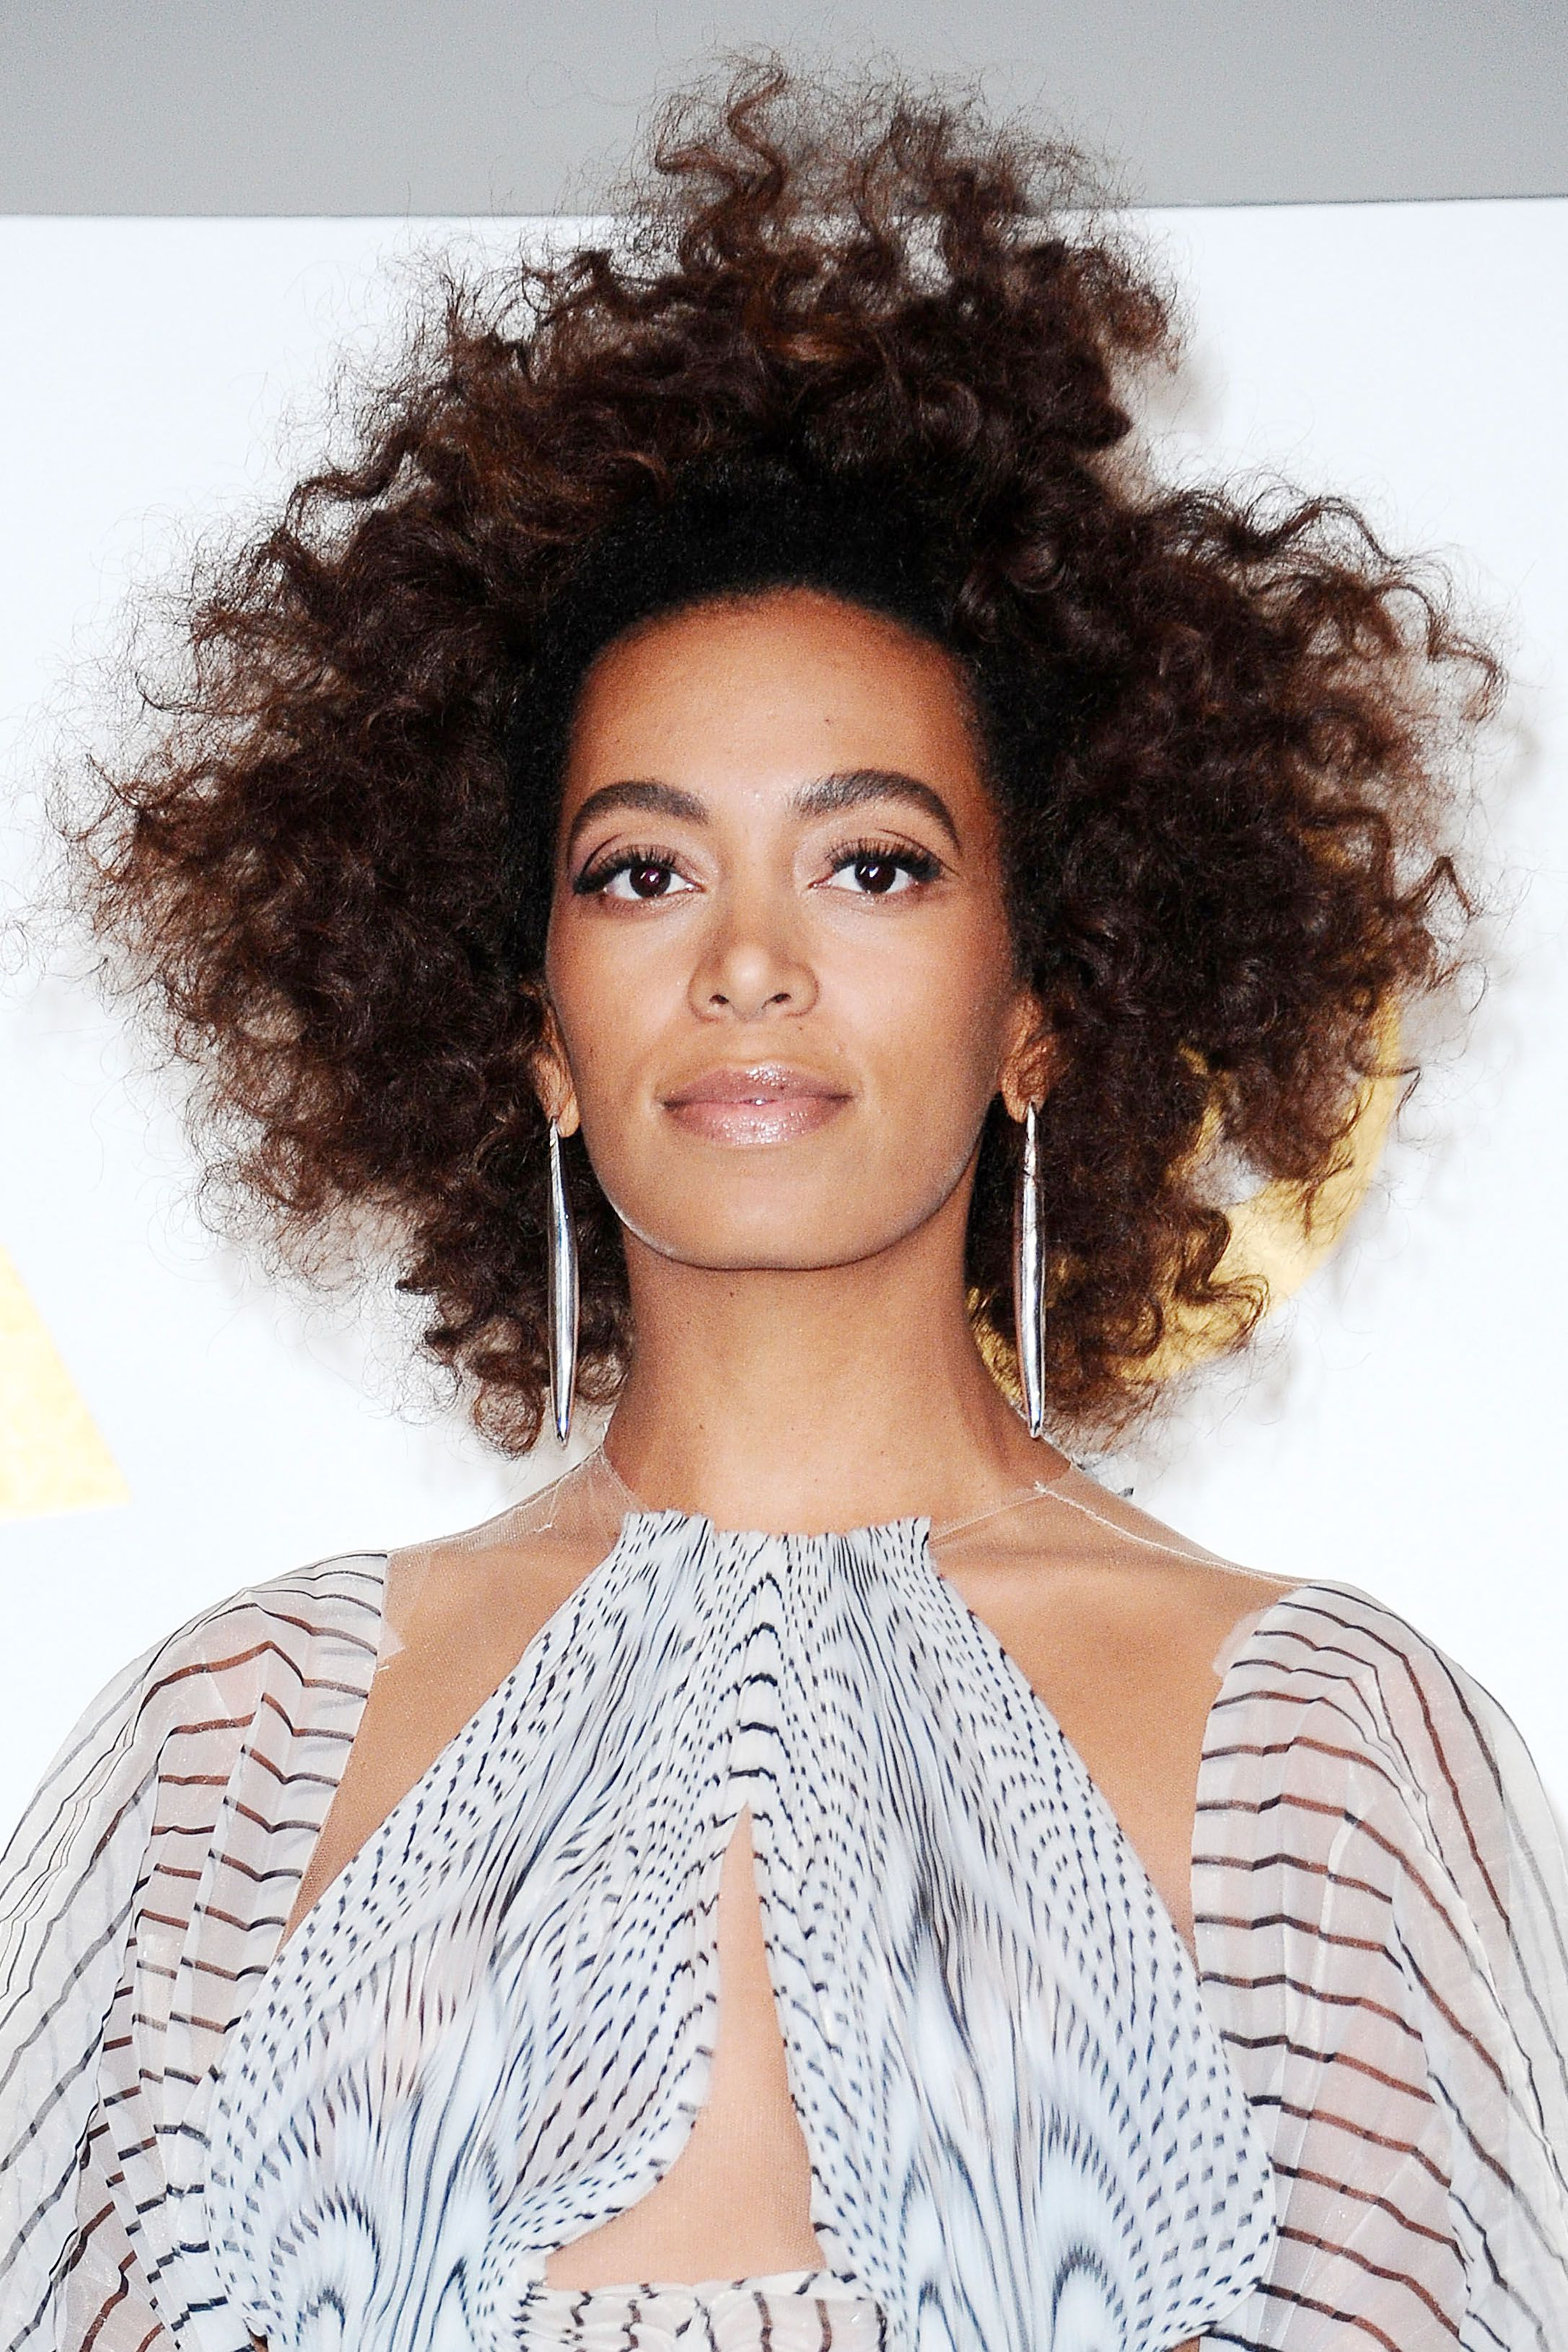 15 Gorgeous Natural Hairstyle Ideas - Natural, Curly, and Braided